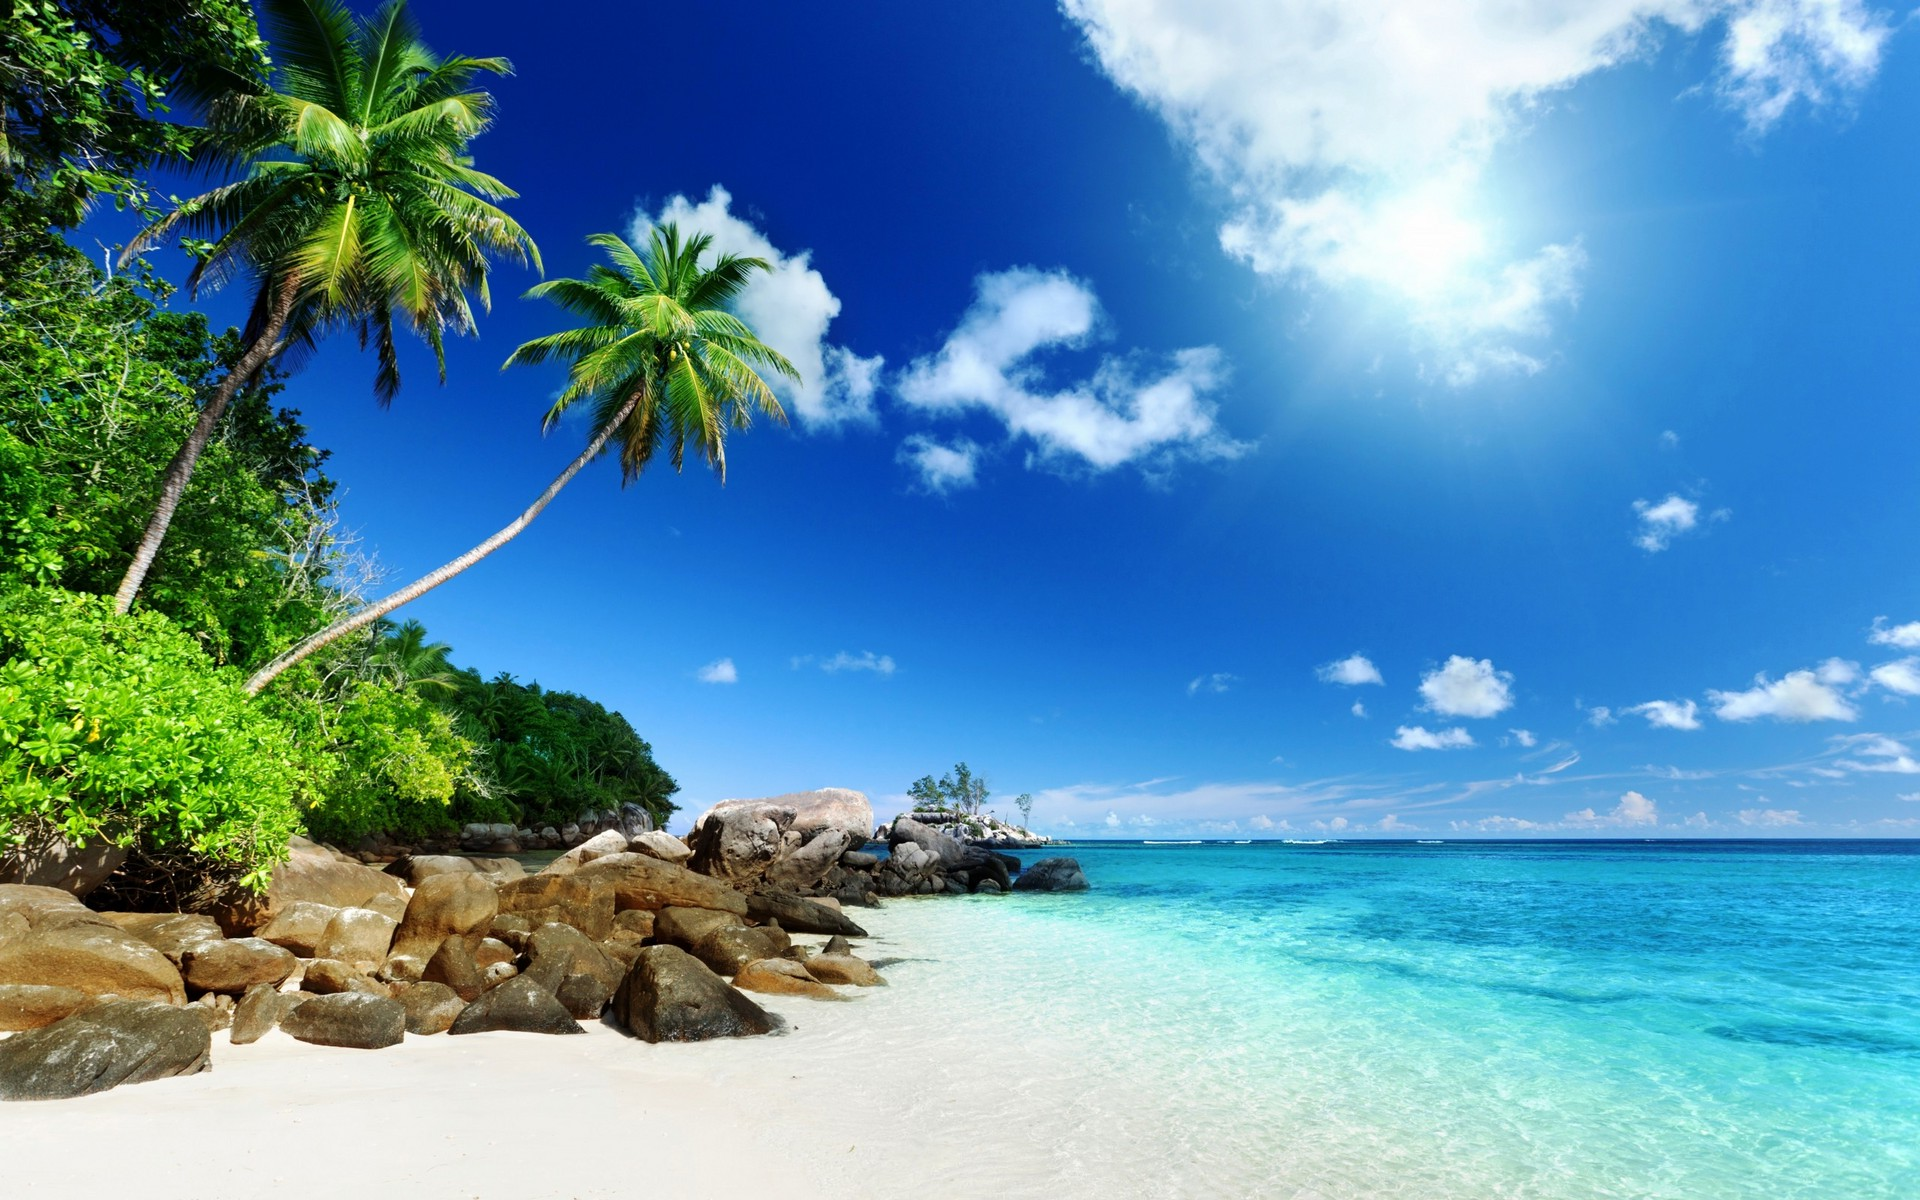 Desktop Wallpaper Tropical Island Pictures 1920x1200